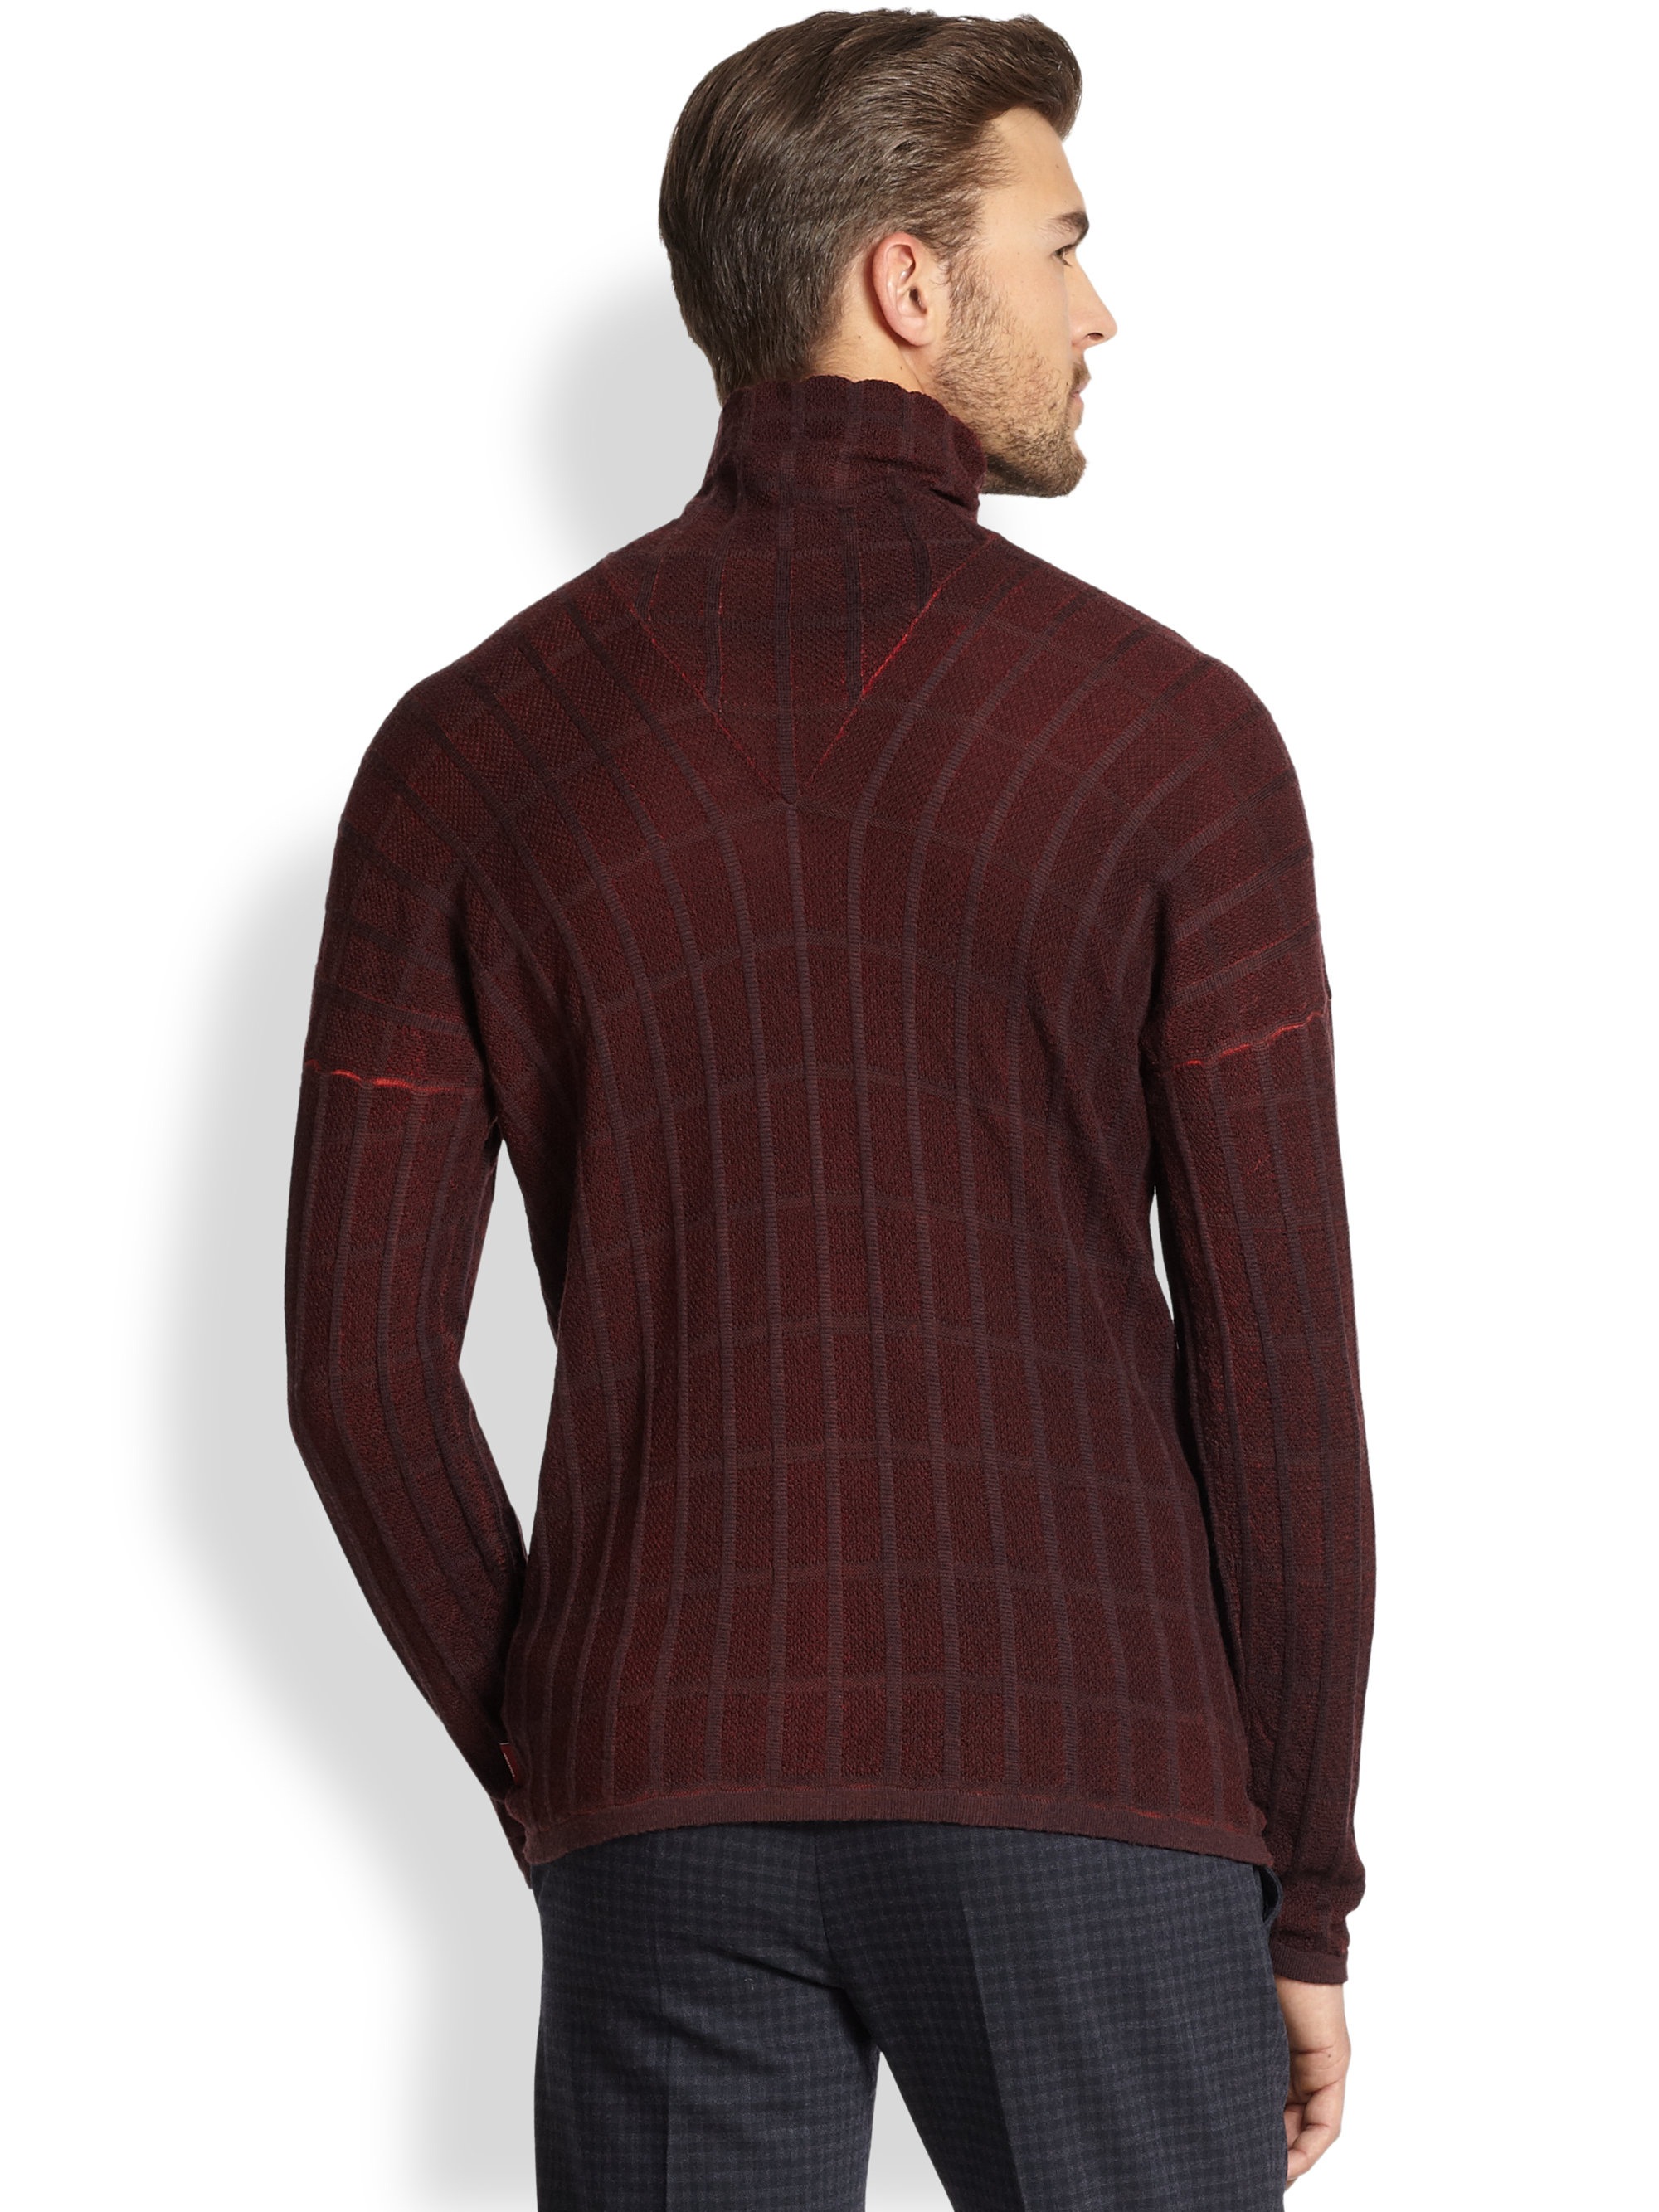 Armani Turtleneck Sweater in Brown for Men | Lyst